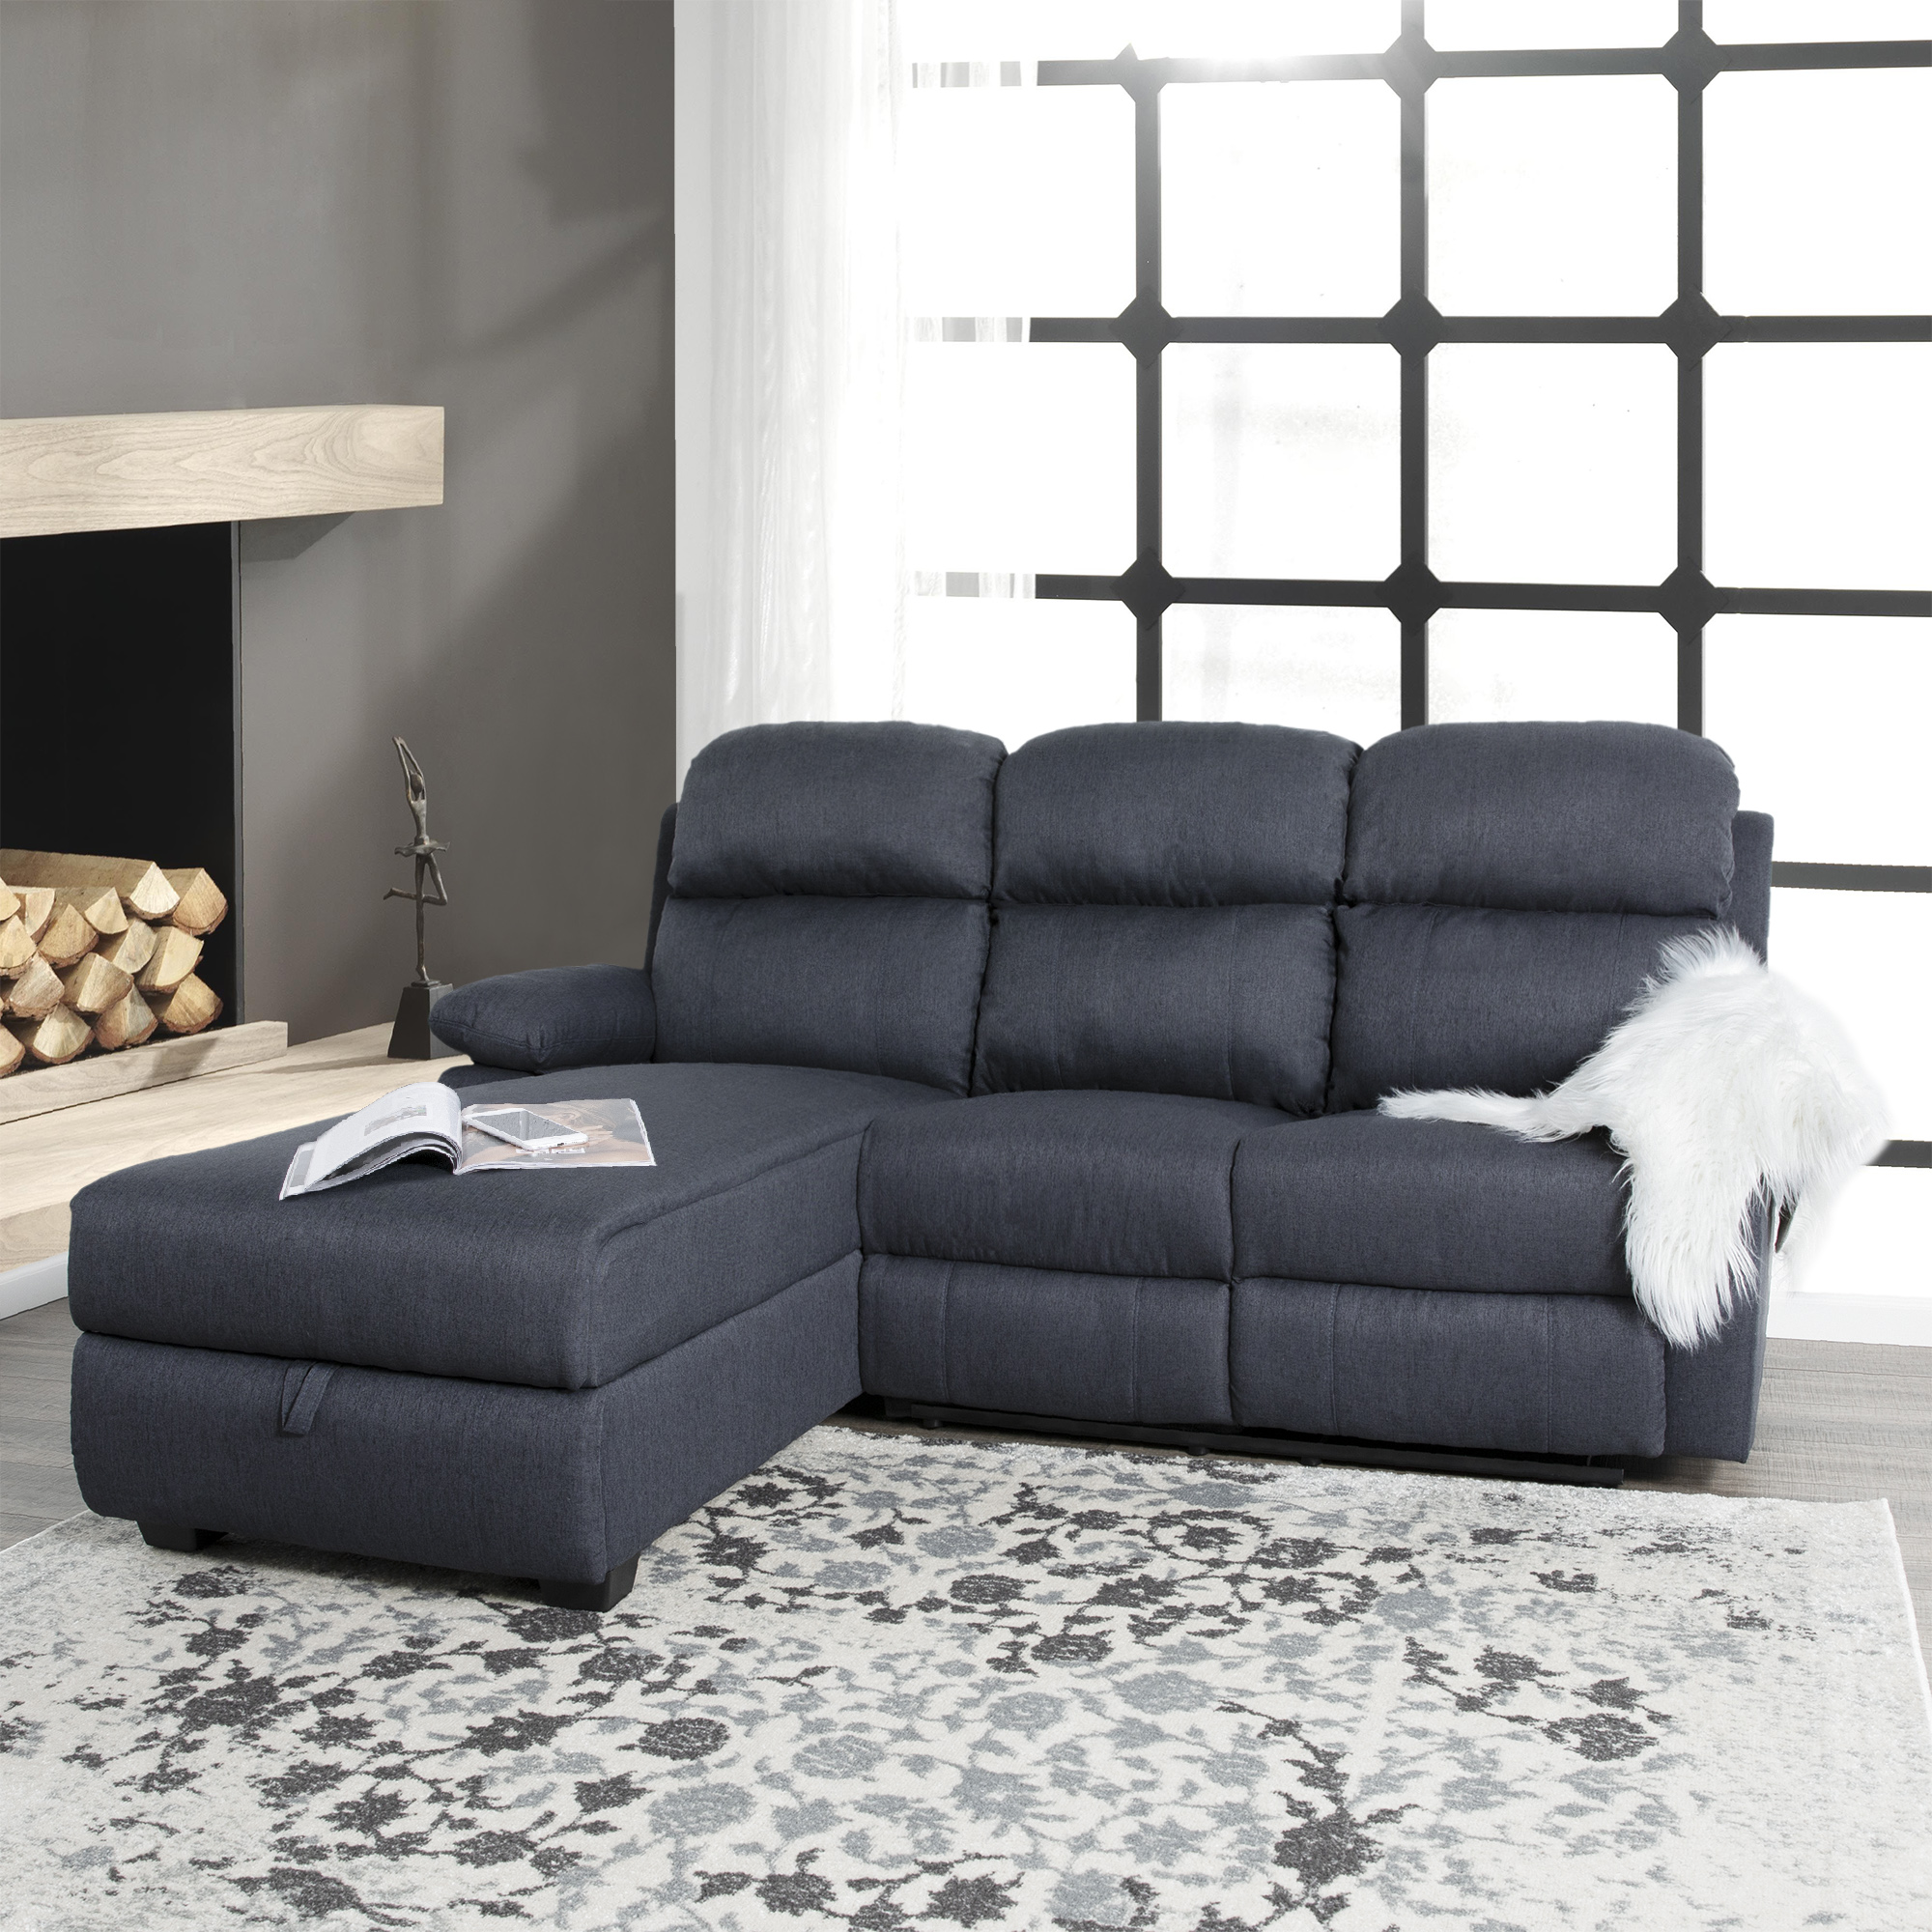 Ottomanson Recliner L-Shaped Corner Sectional Sofa With